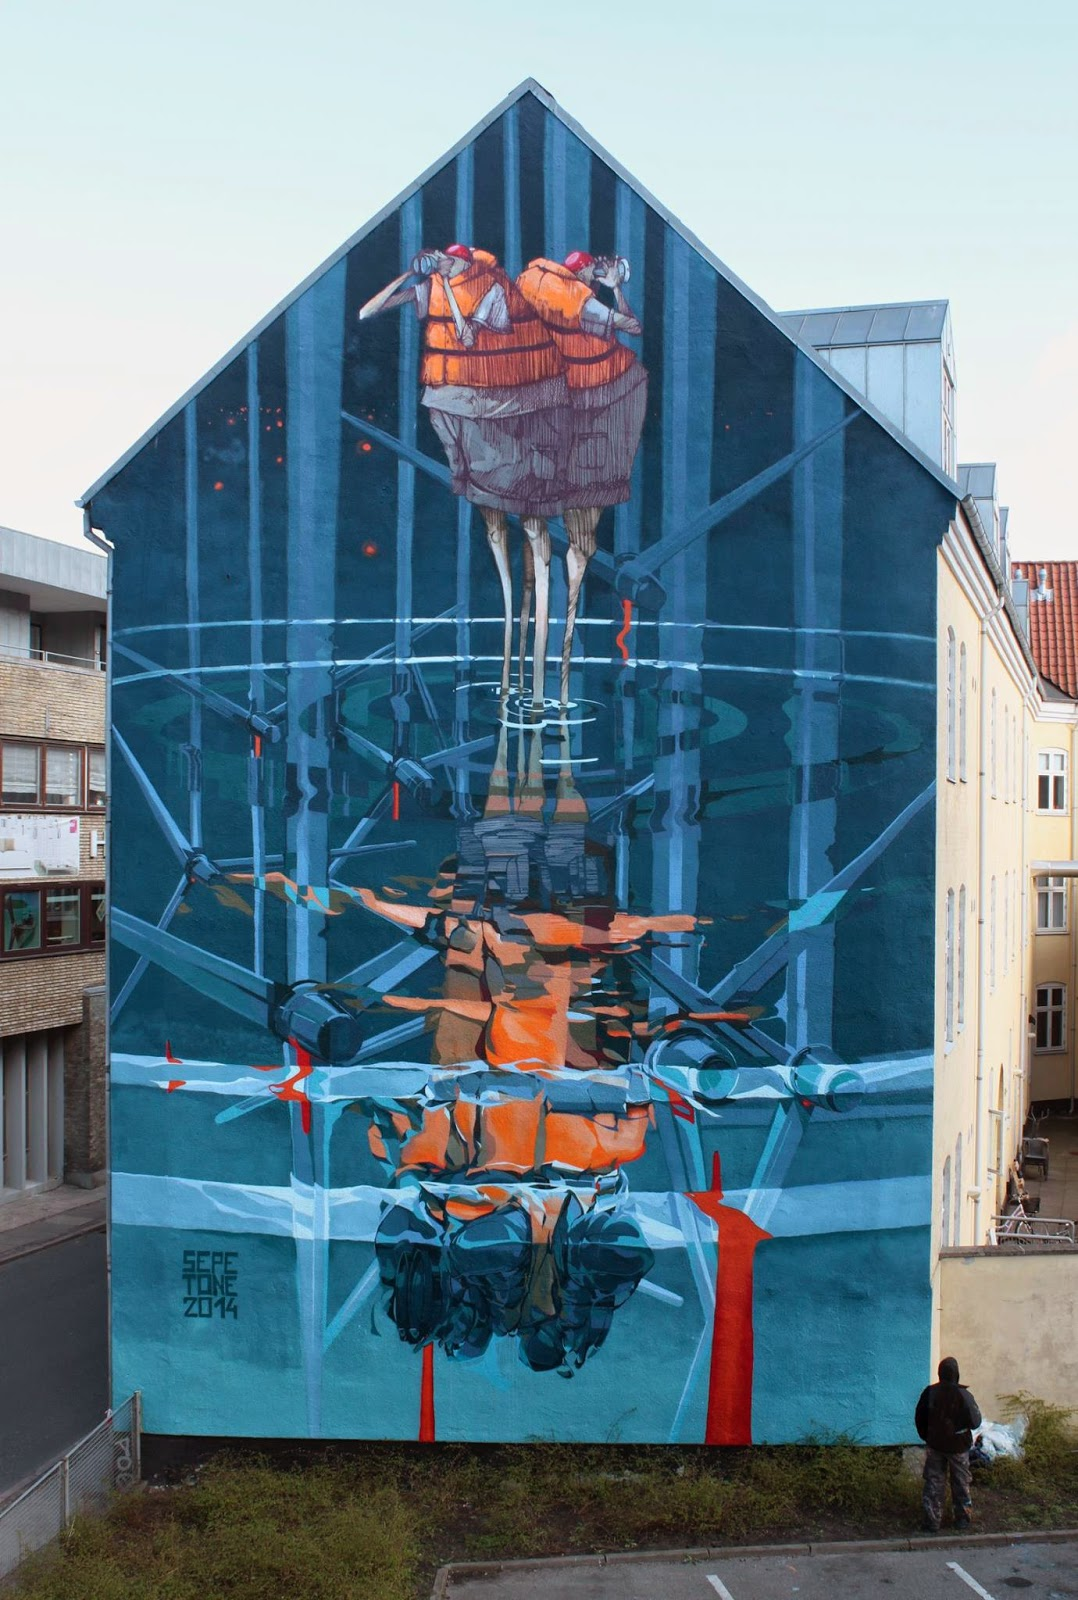 "While we last heard from him last Summer with Chazme in Slovakia (covered), Robert ""Tone"" Proch is now in Denmark where he teamed up with Sepe to work on this new piece somewhere on the streets of Aalborg."